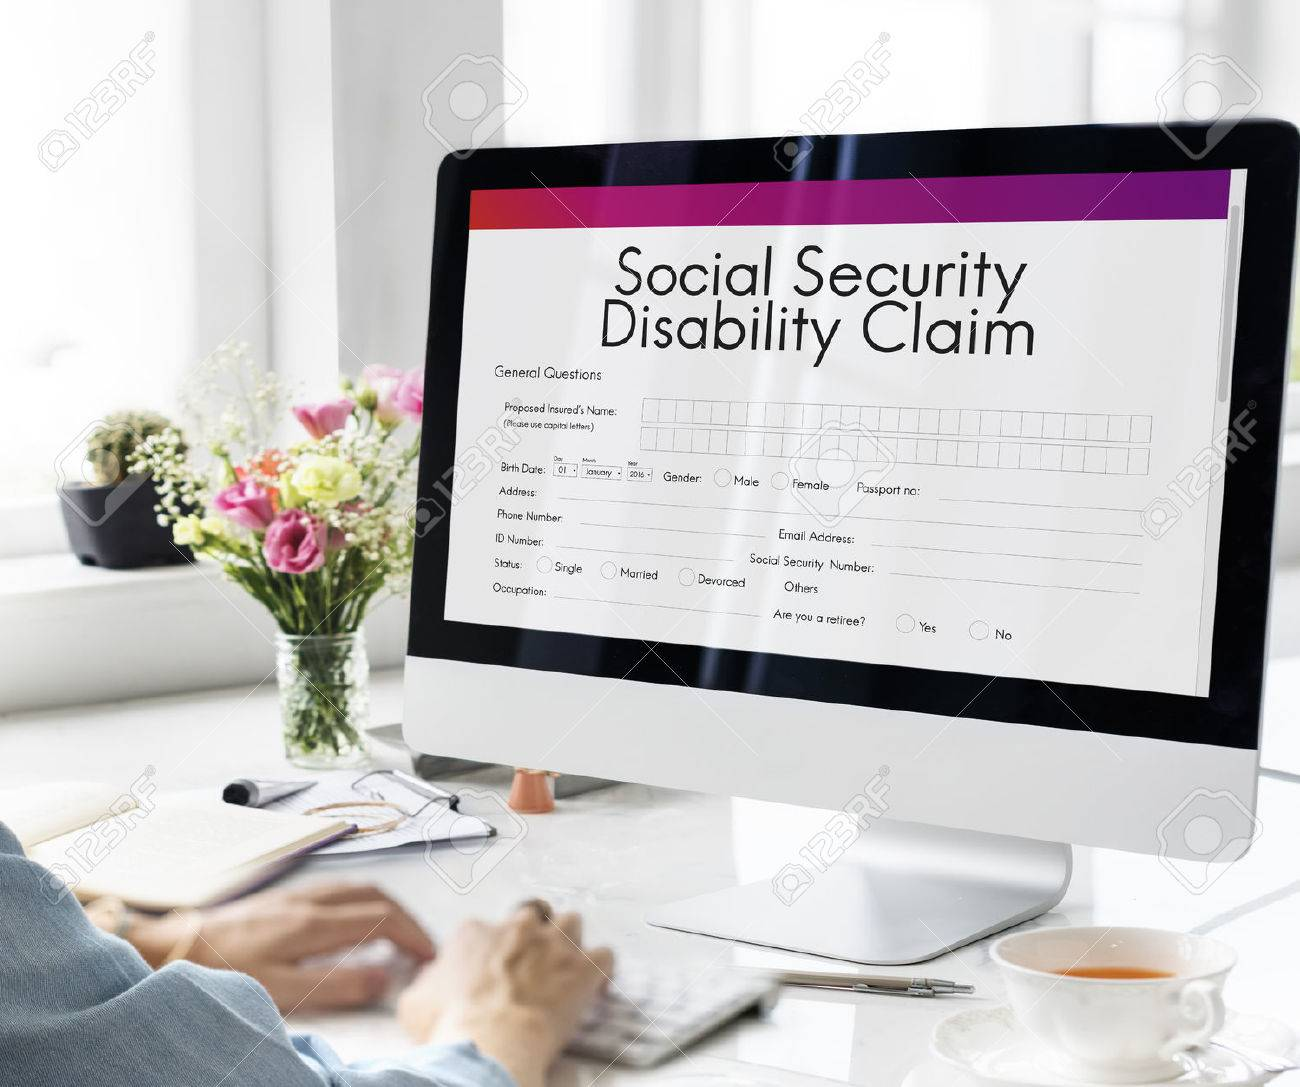 Social Security Disability Claim Concept Standard-Bild - 63057499